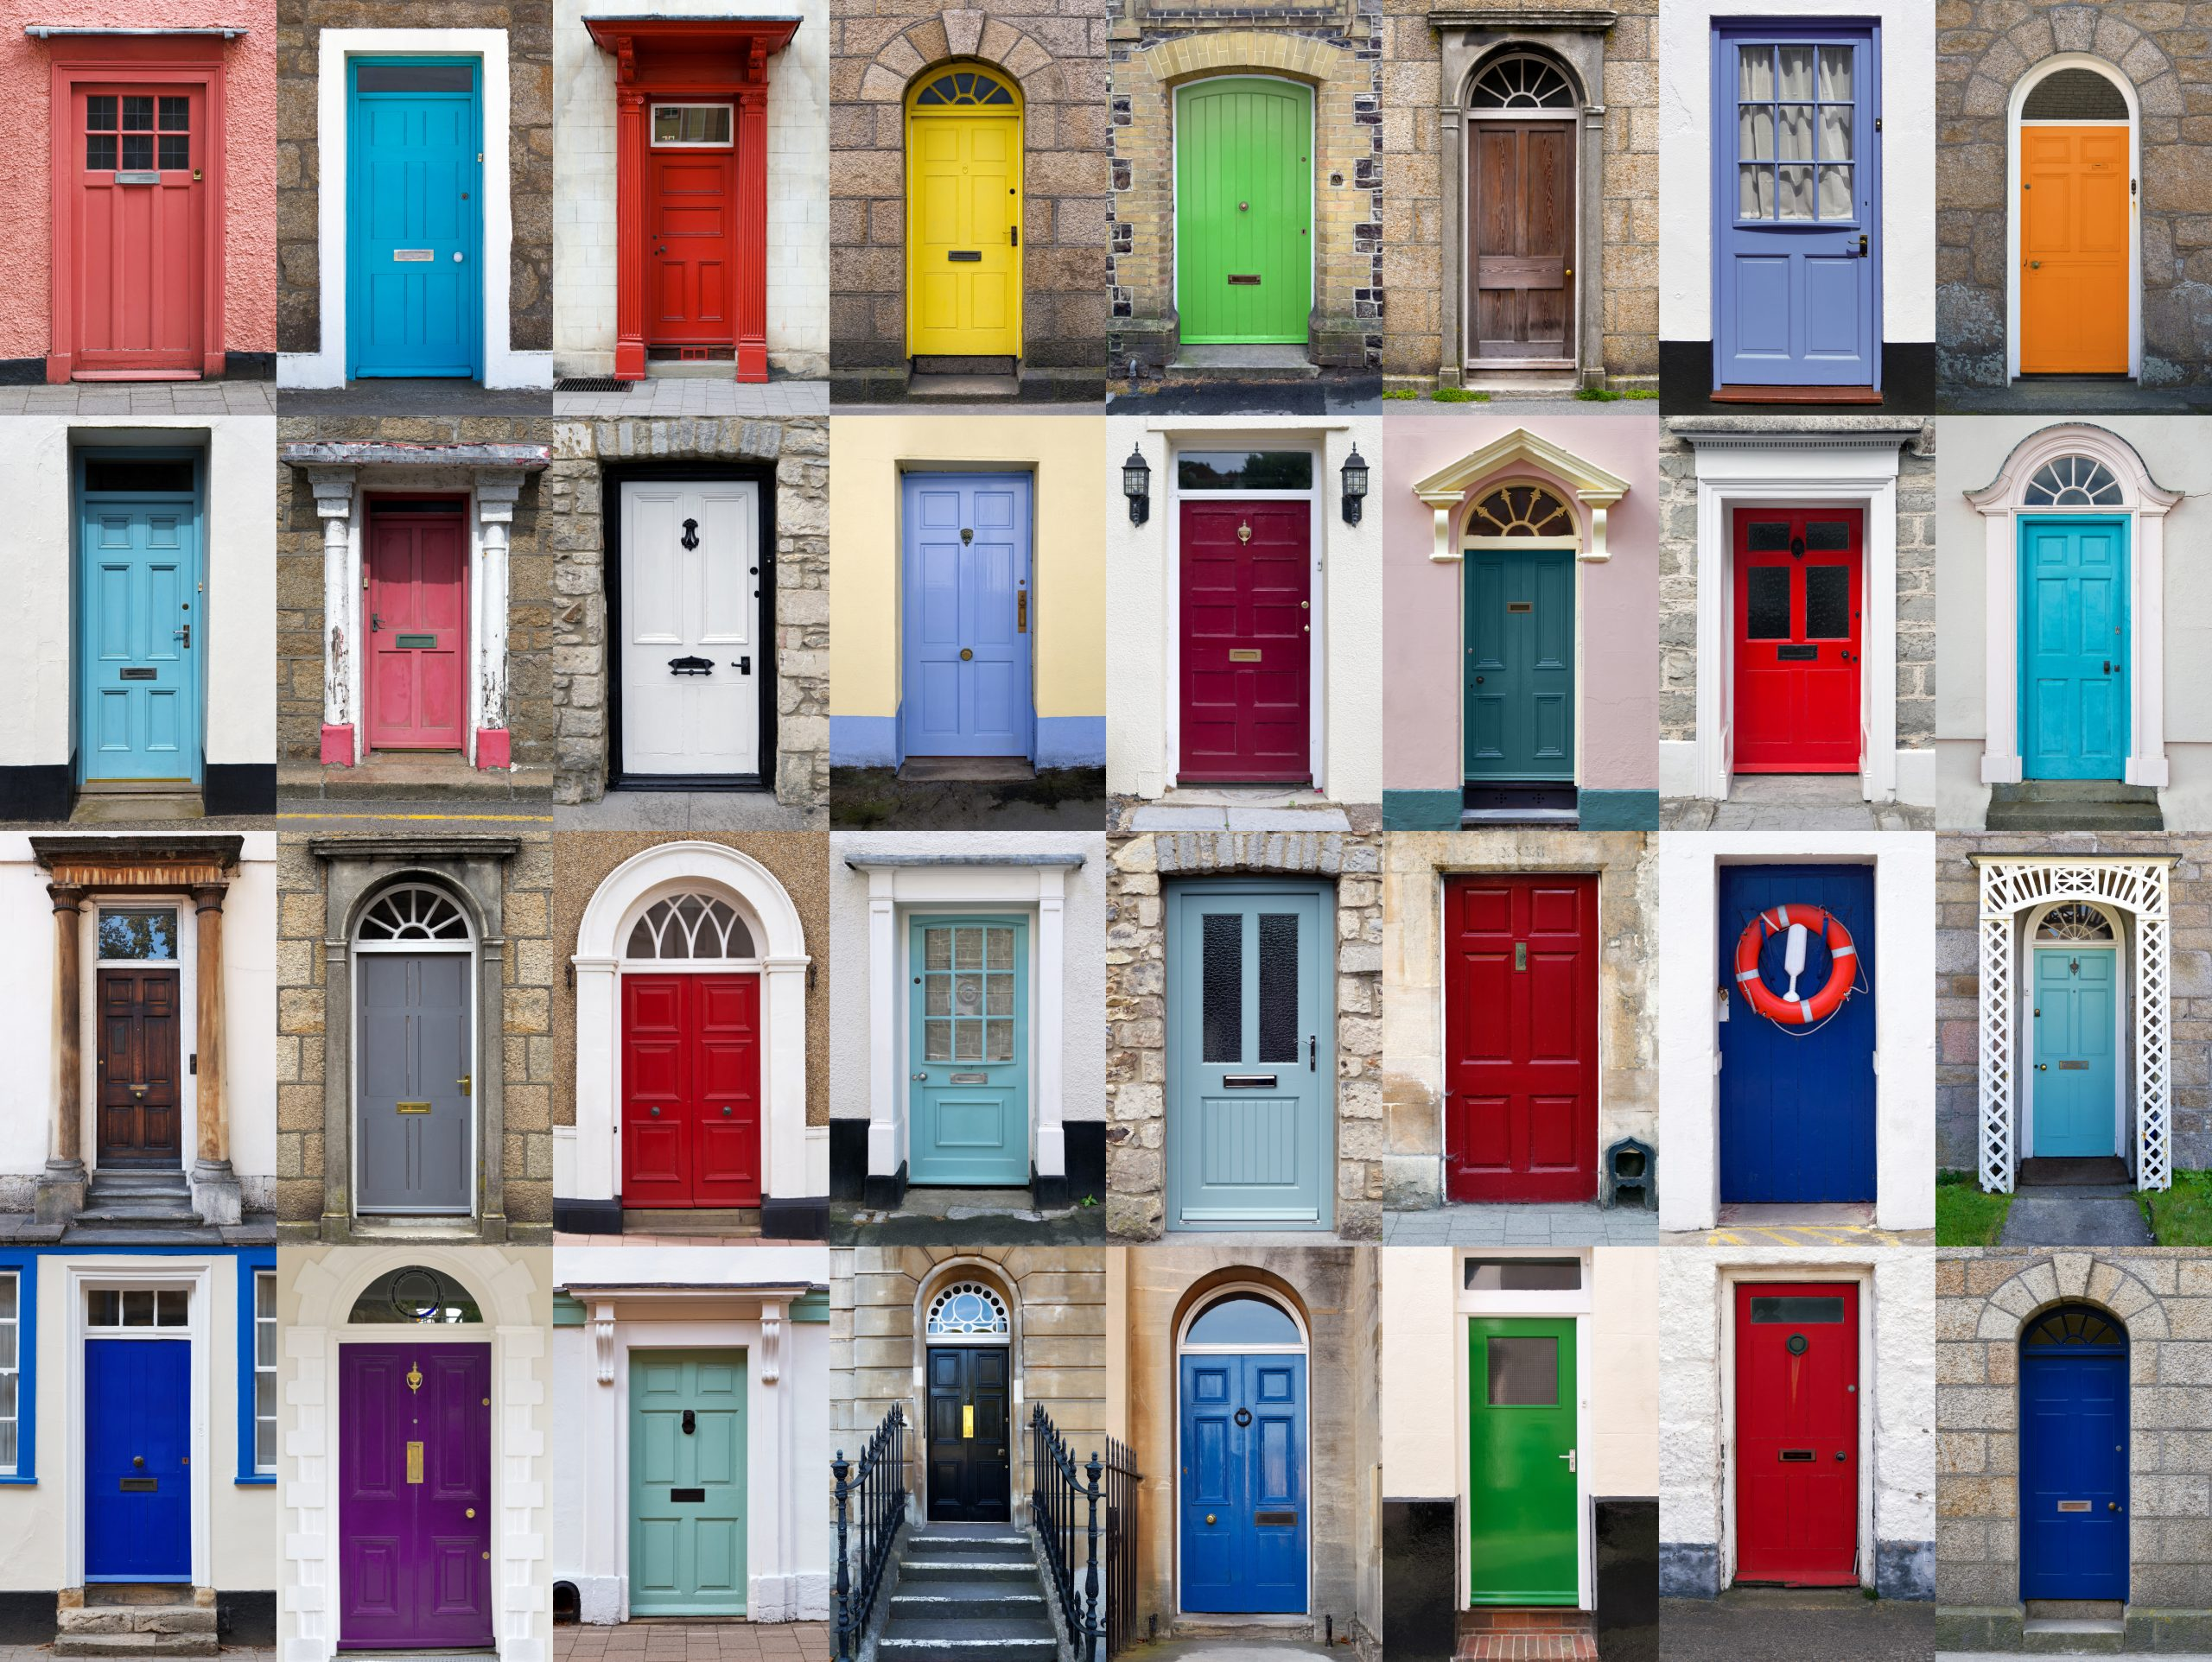 Lots of different coloured doors